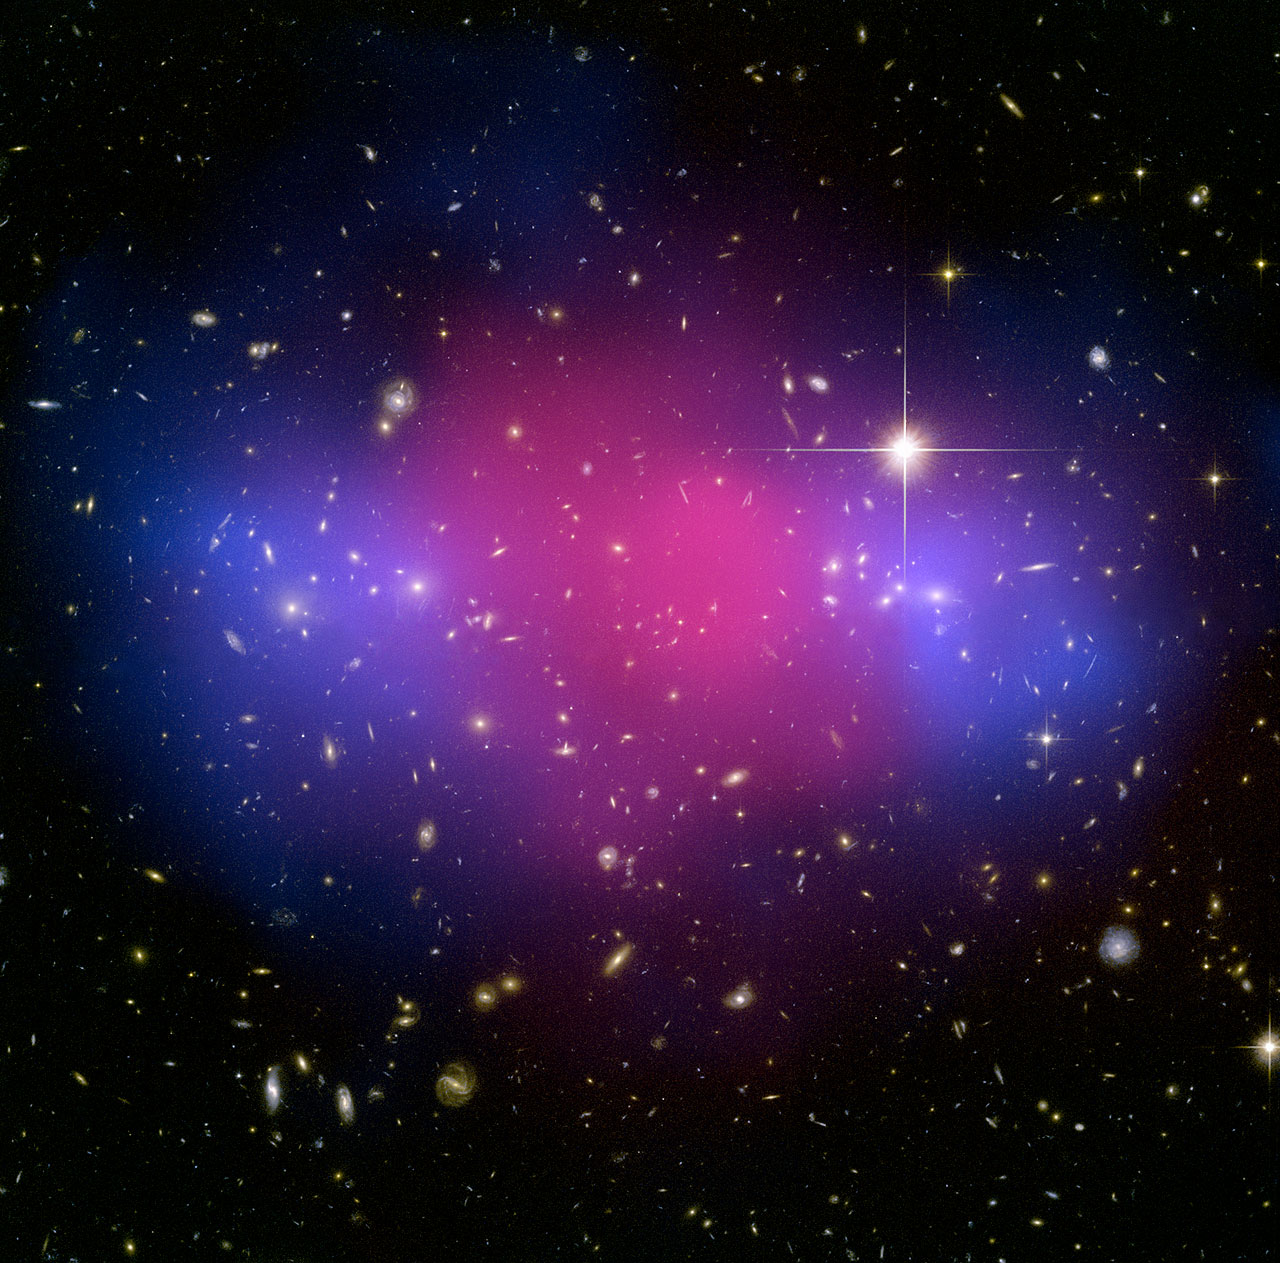 Hubble and Chandra composite of the galaxy cluster MACS J0025.4-1222